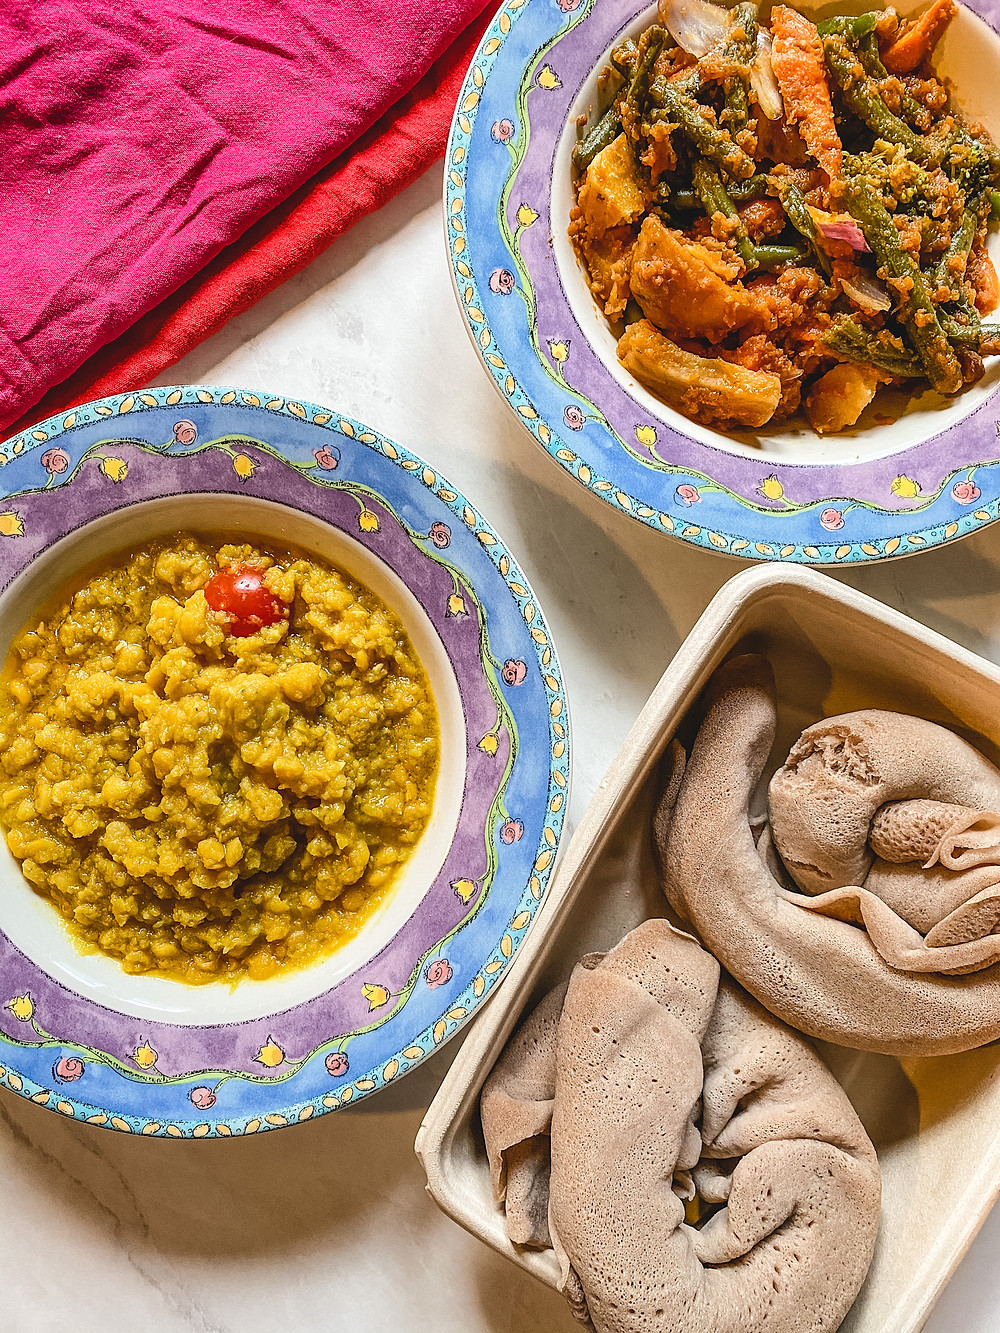 Ingera bread in a container, Ethiopian lentils in a bowl with a flowery blue rim, vegetables in a bowl with a flowery blue rim, and a red and pink cloth napkin arranged on a white table